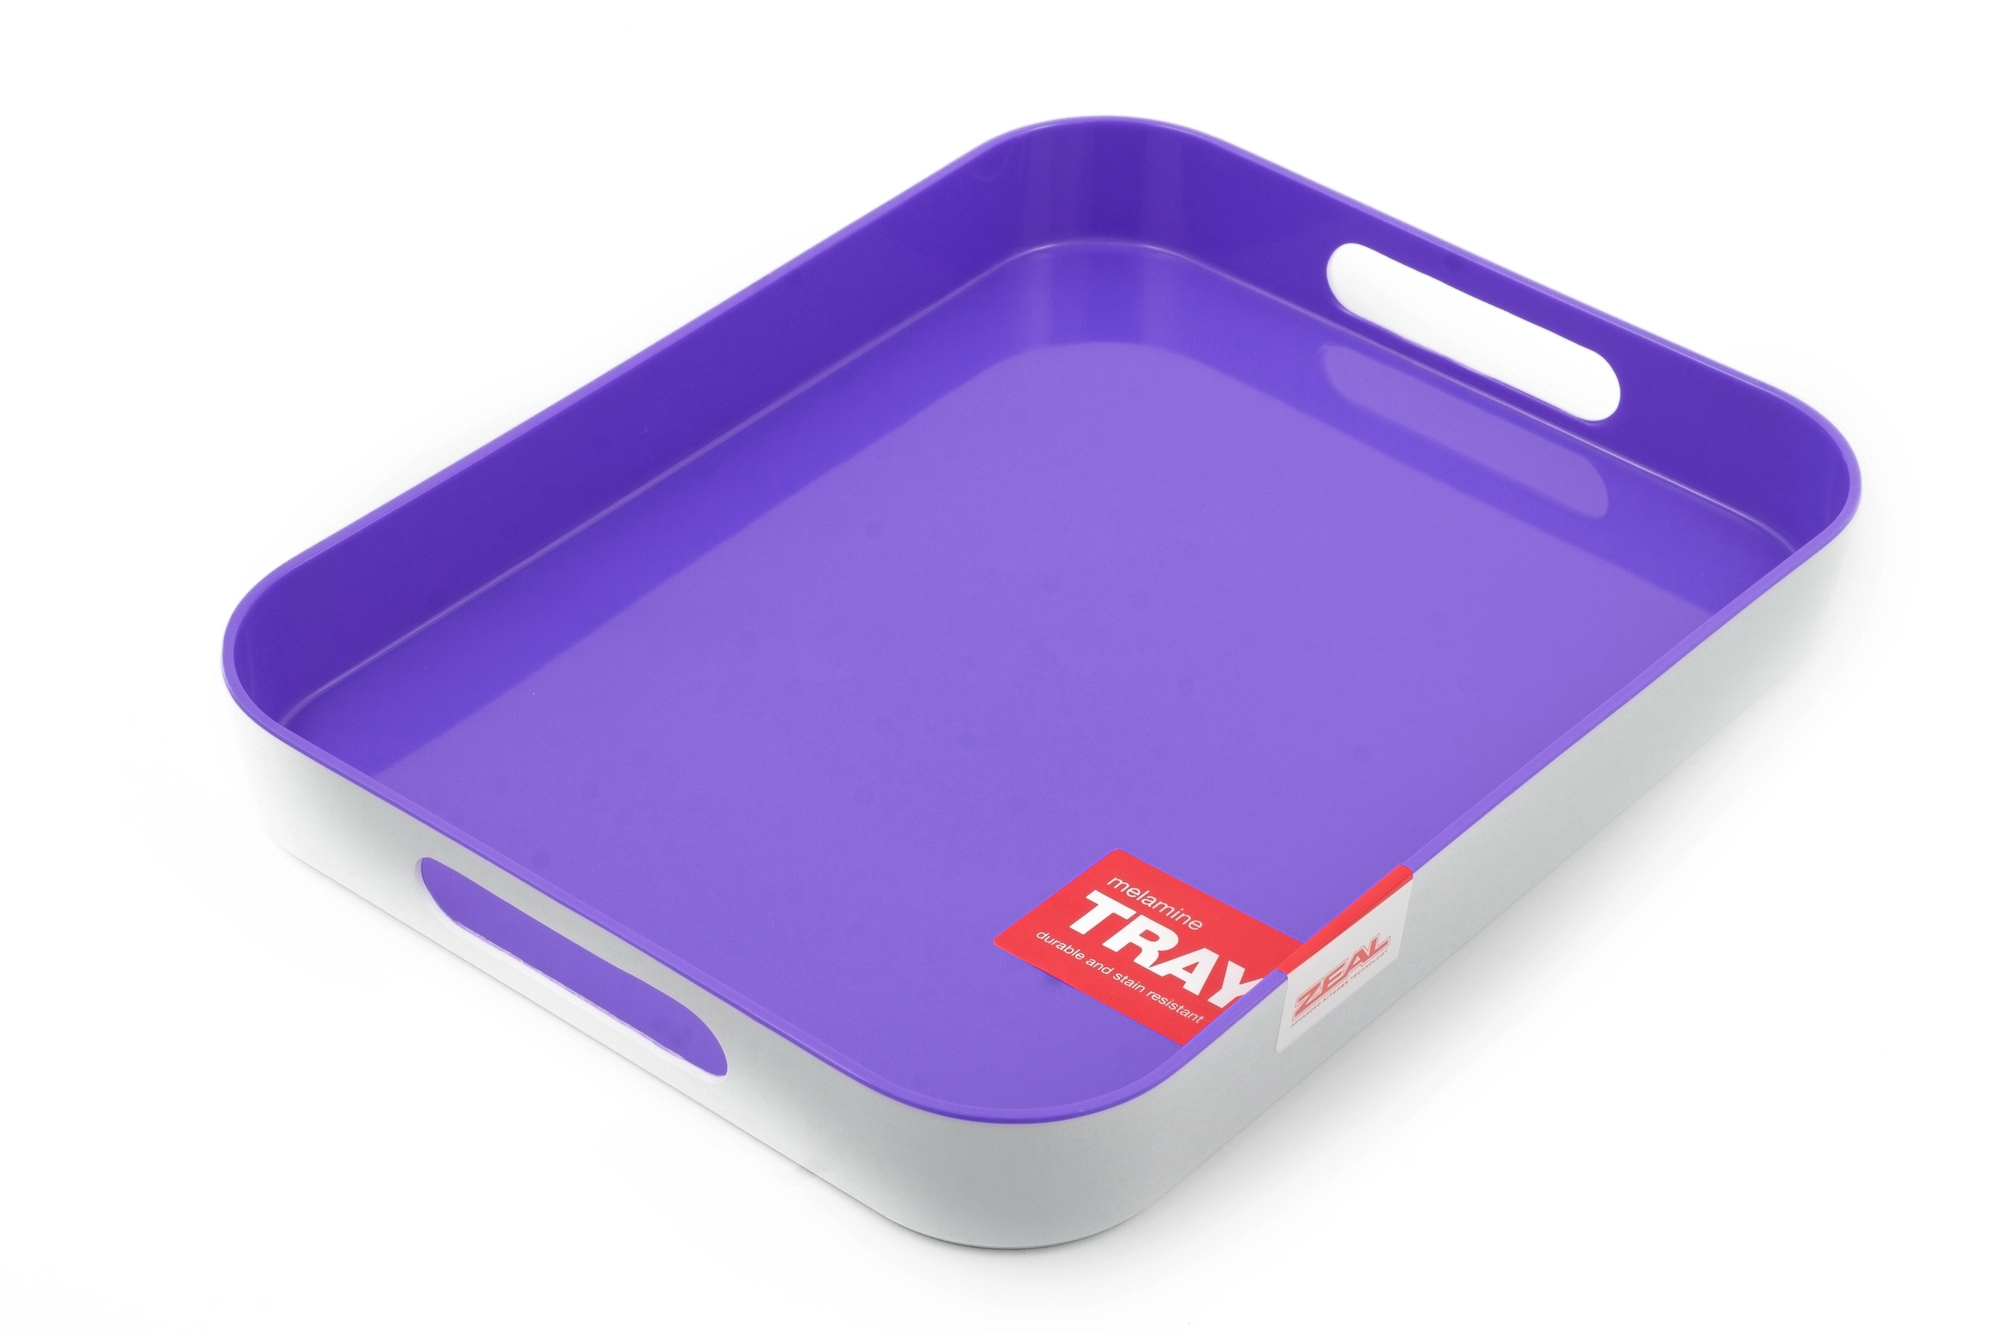 new zeal kitchen purple melamine dinner party snack food serving lap tray 33x26 ebay. Black Bedroom Furniture Sets. Home Design Ideas